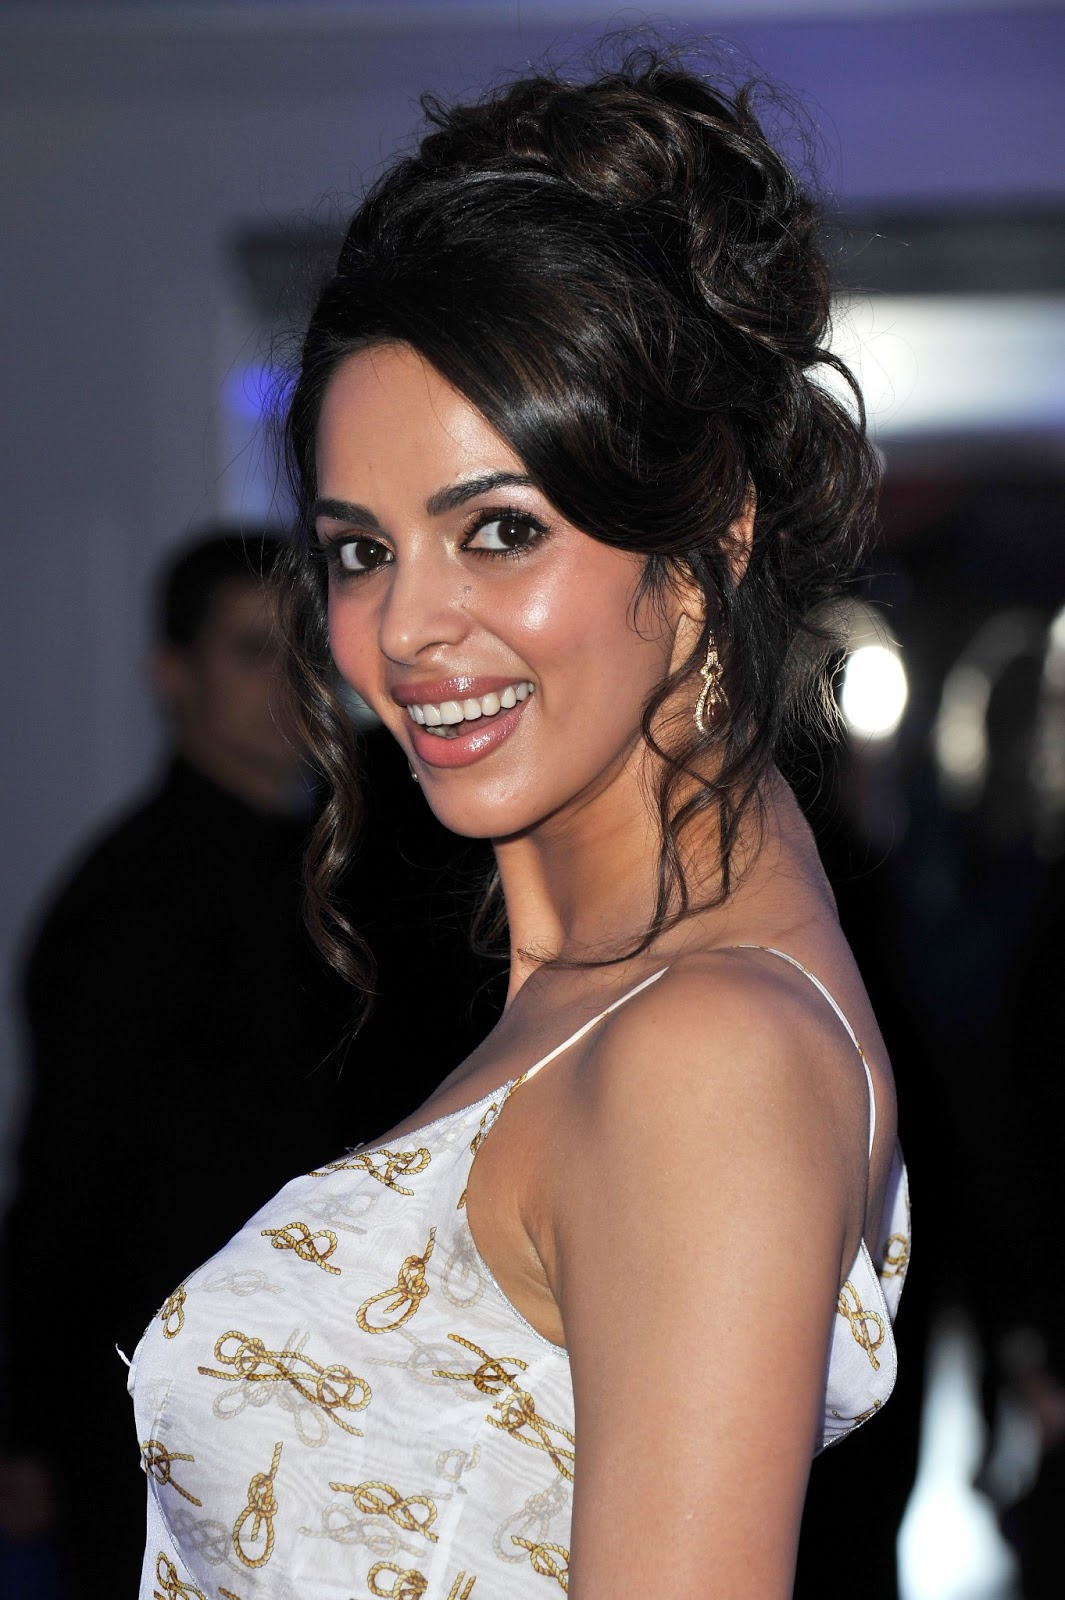 Allways. ...please mallika sherawat photo download video....sexy woman